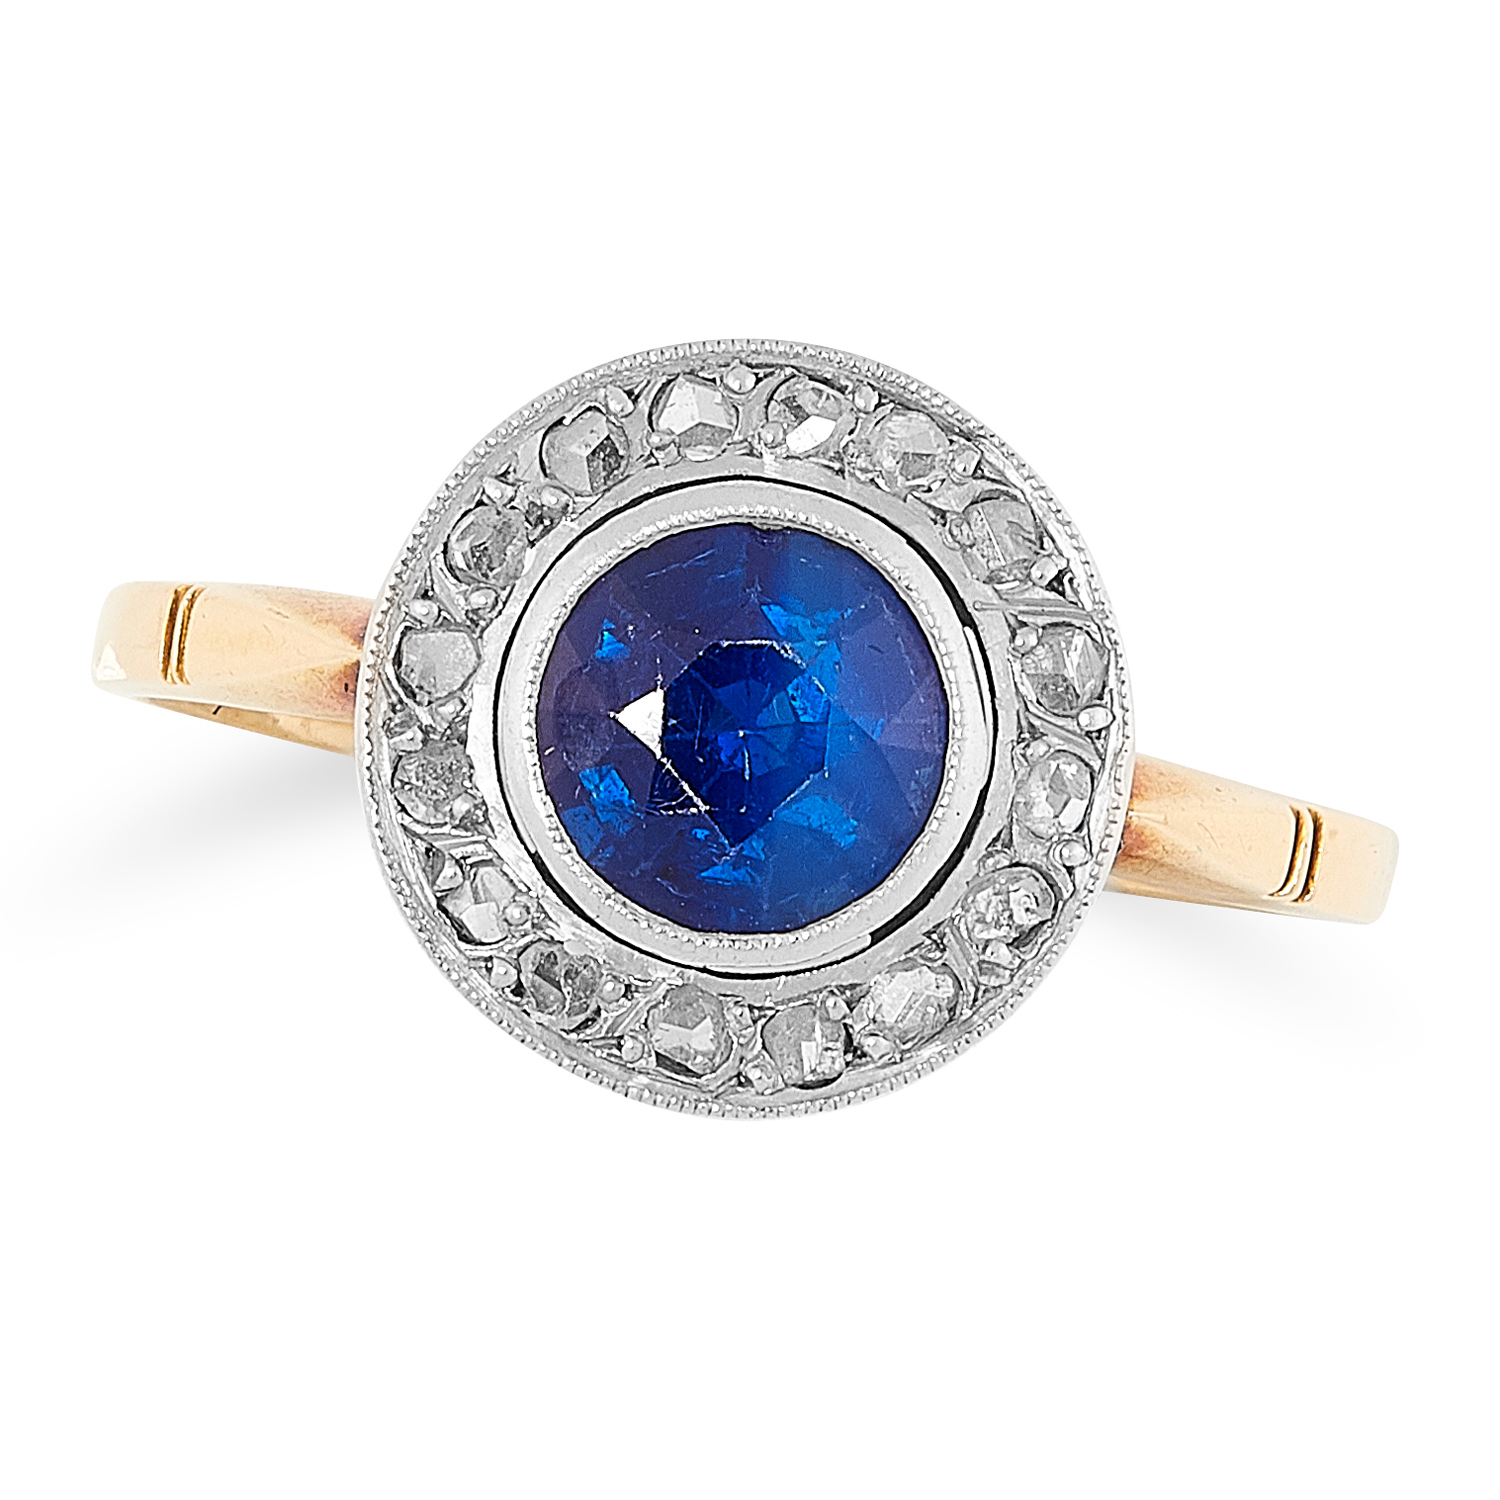 A SAPPHIRE AND DIAMOND CLUSTER RING set with a rou